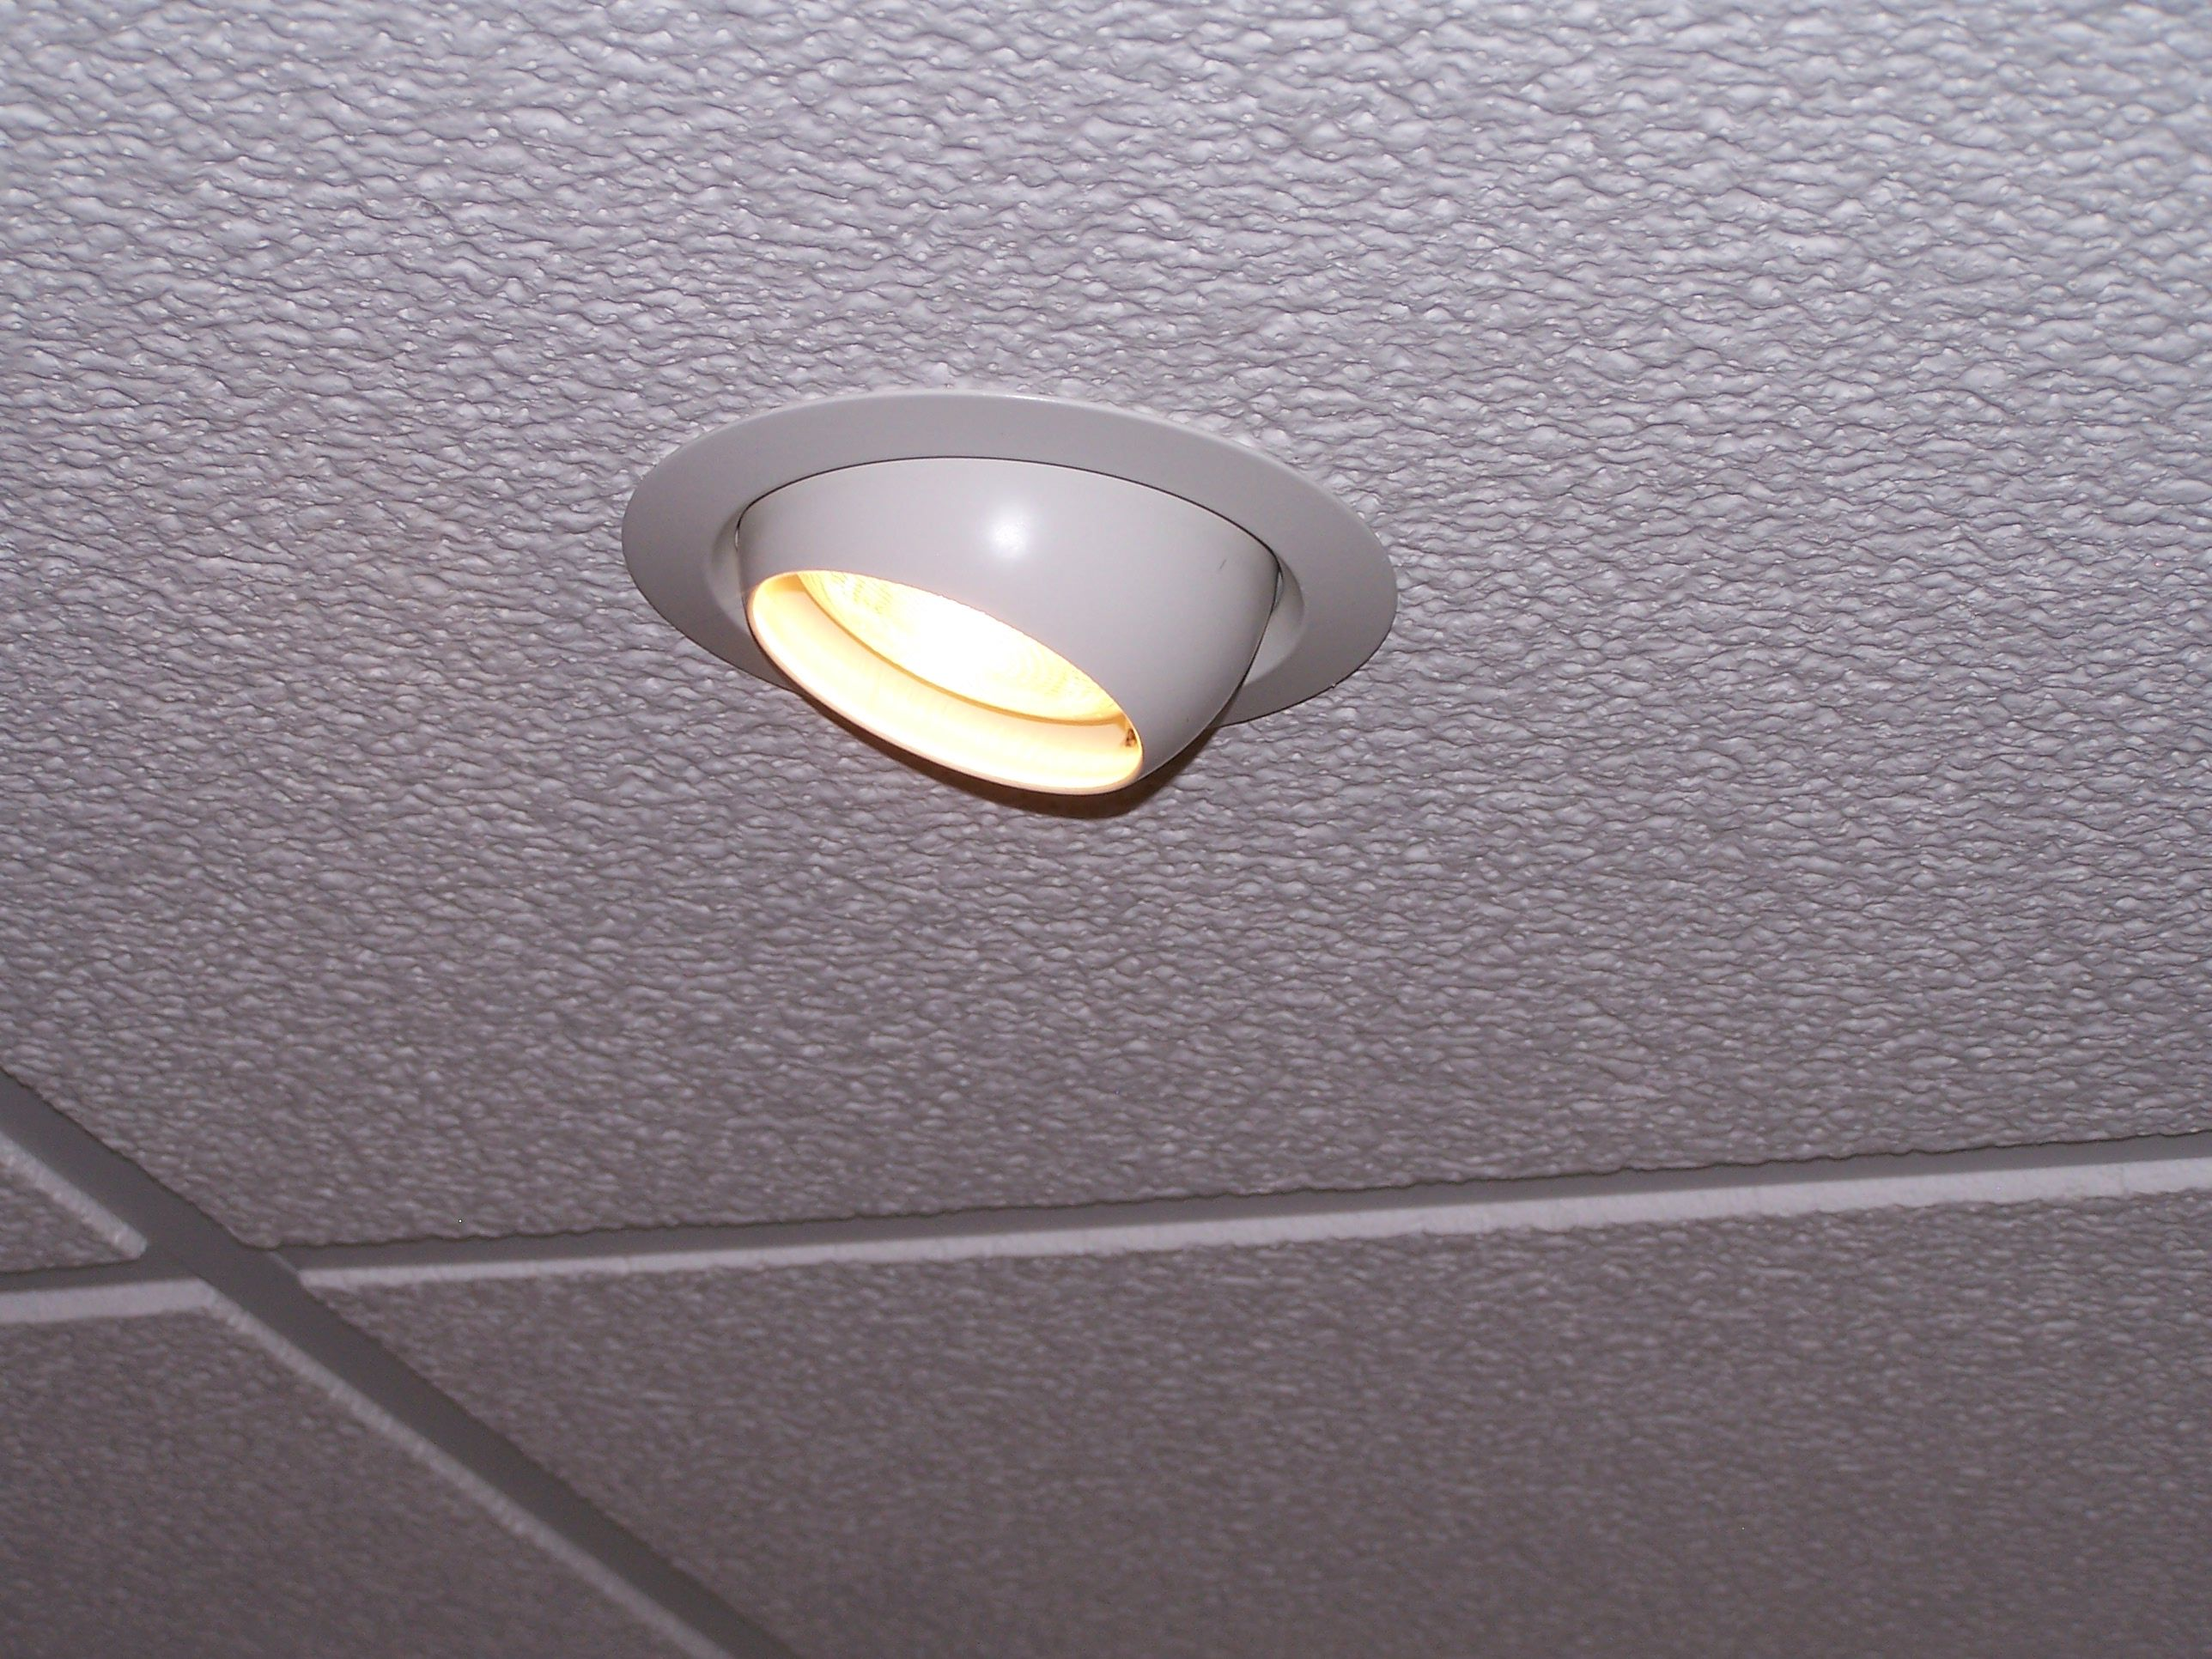 Recessed lighting fixtures in suspended ceiling systems family recessed lighting fixtures in suspended ceiling systems aloadofball Images